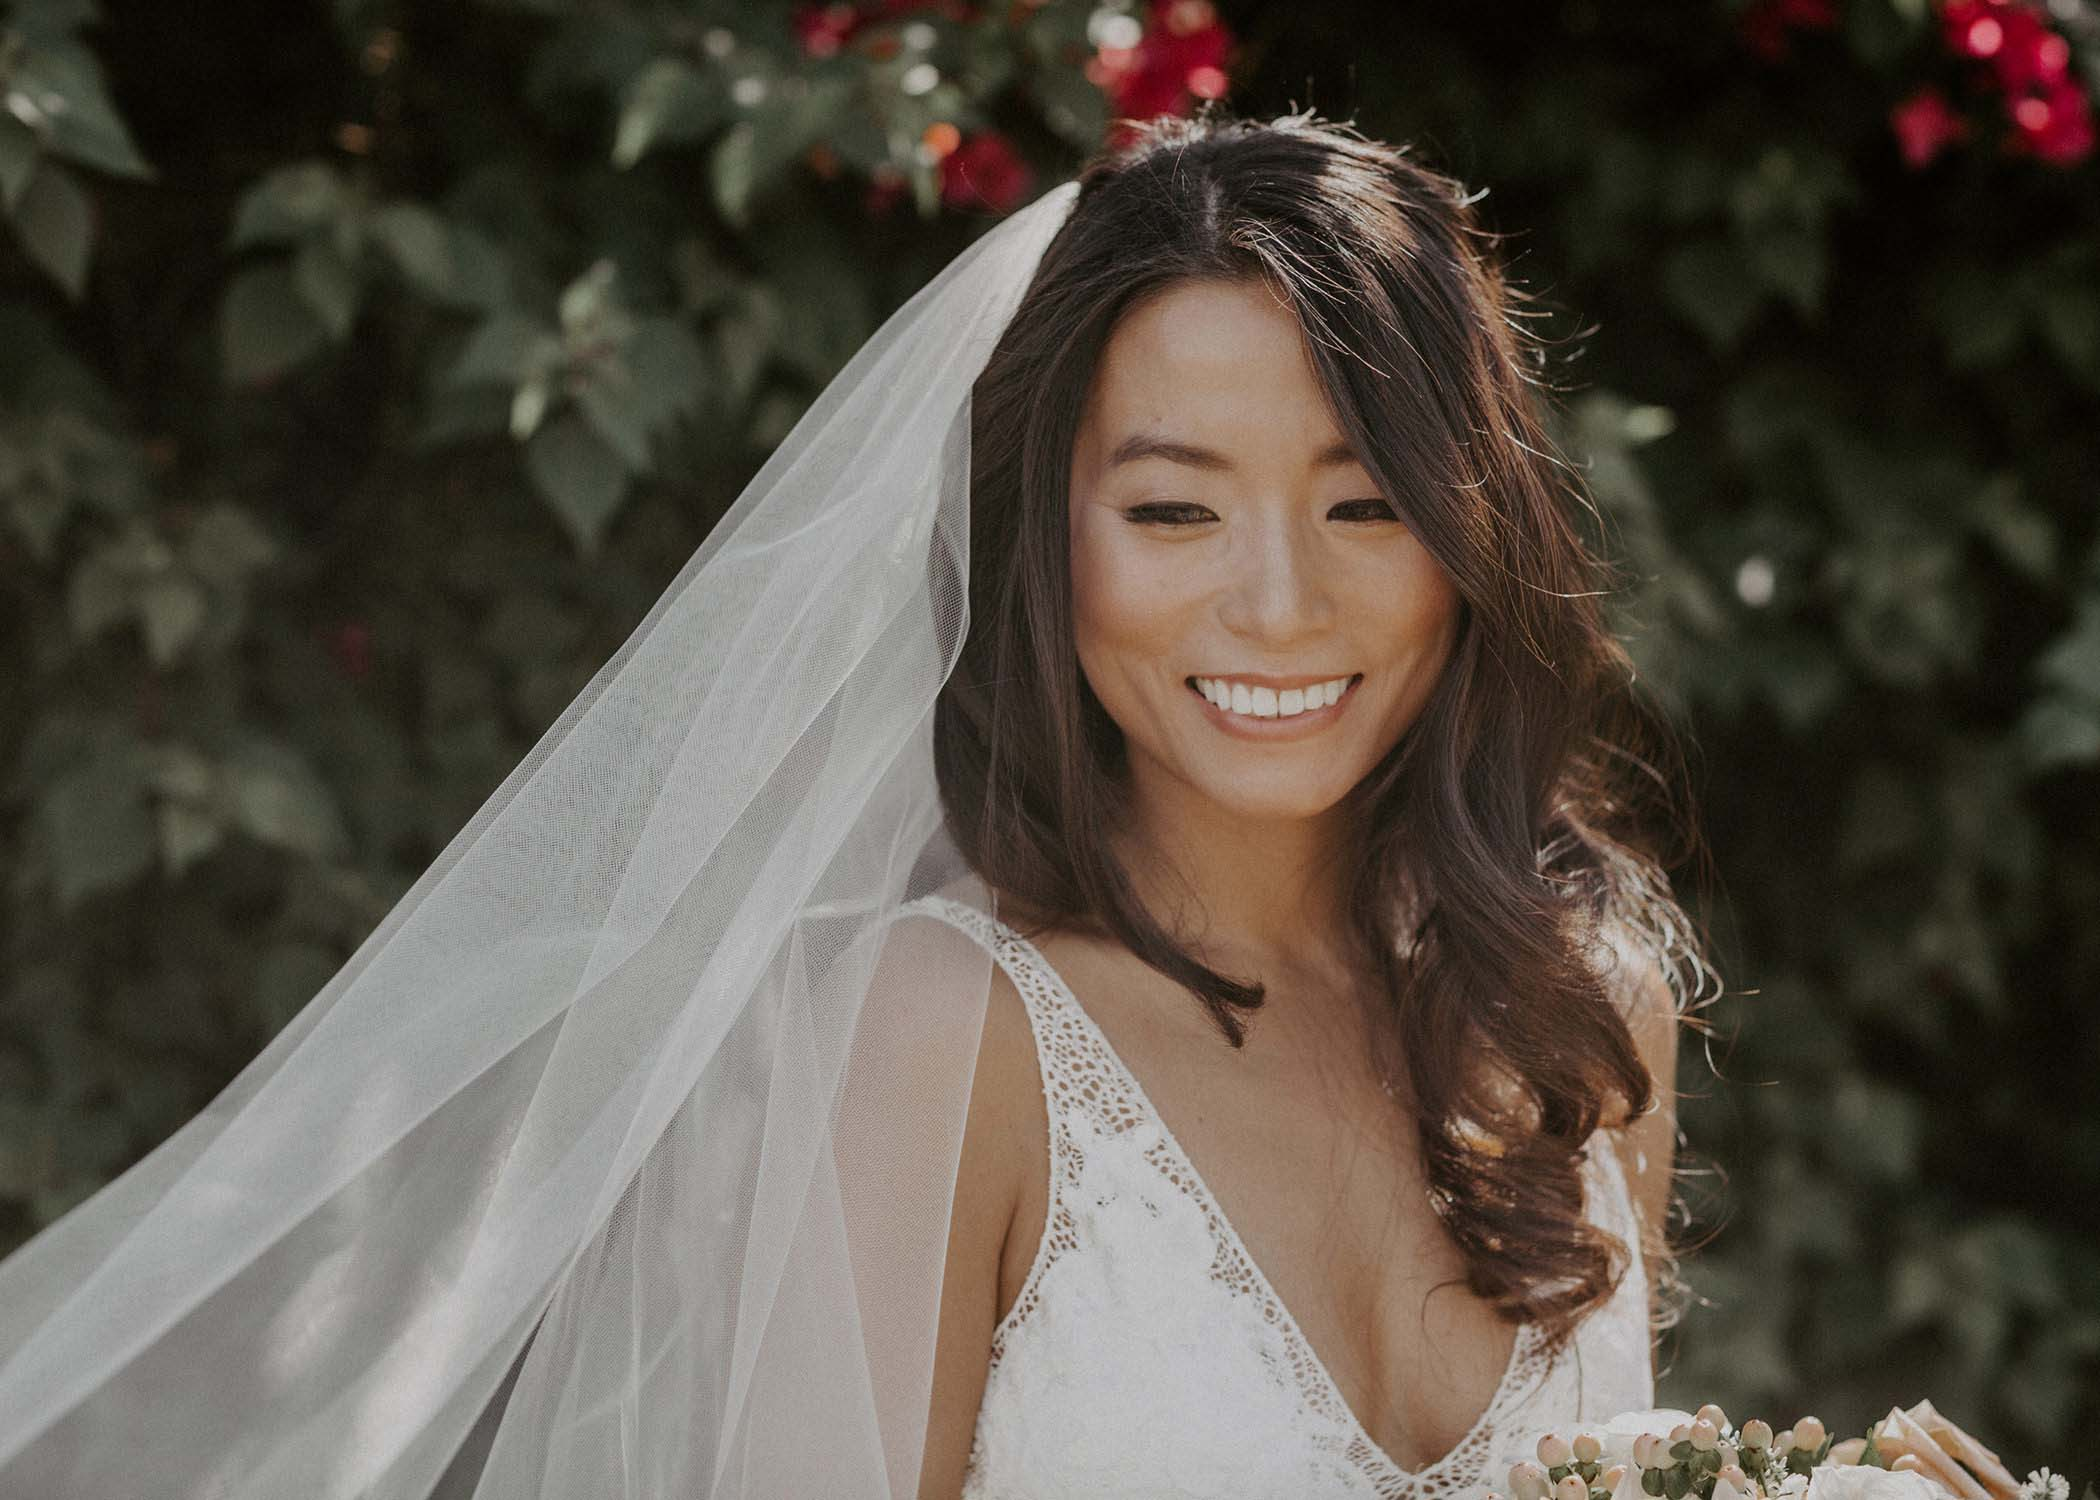 A smiling bride with a veil and bouquet against green wall during an intimate wedding